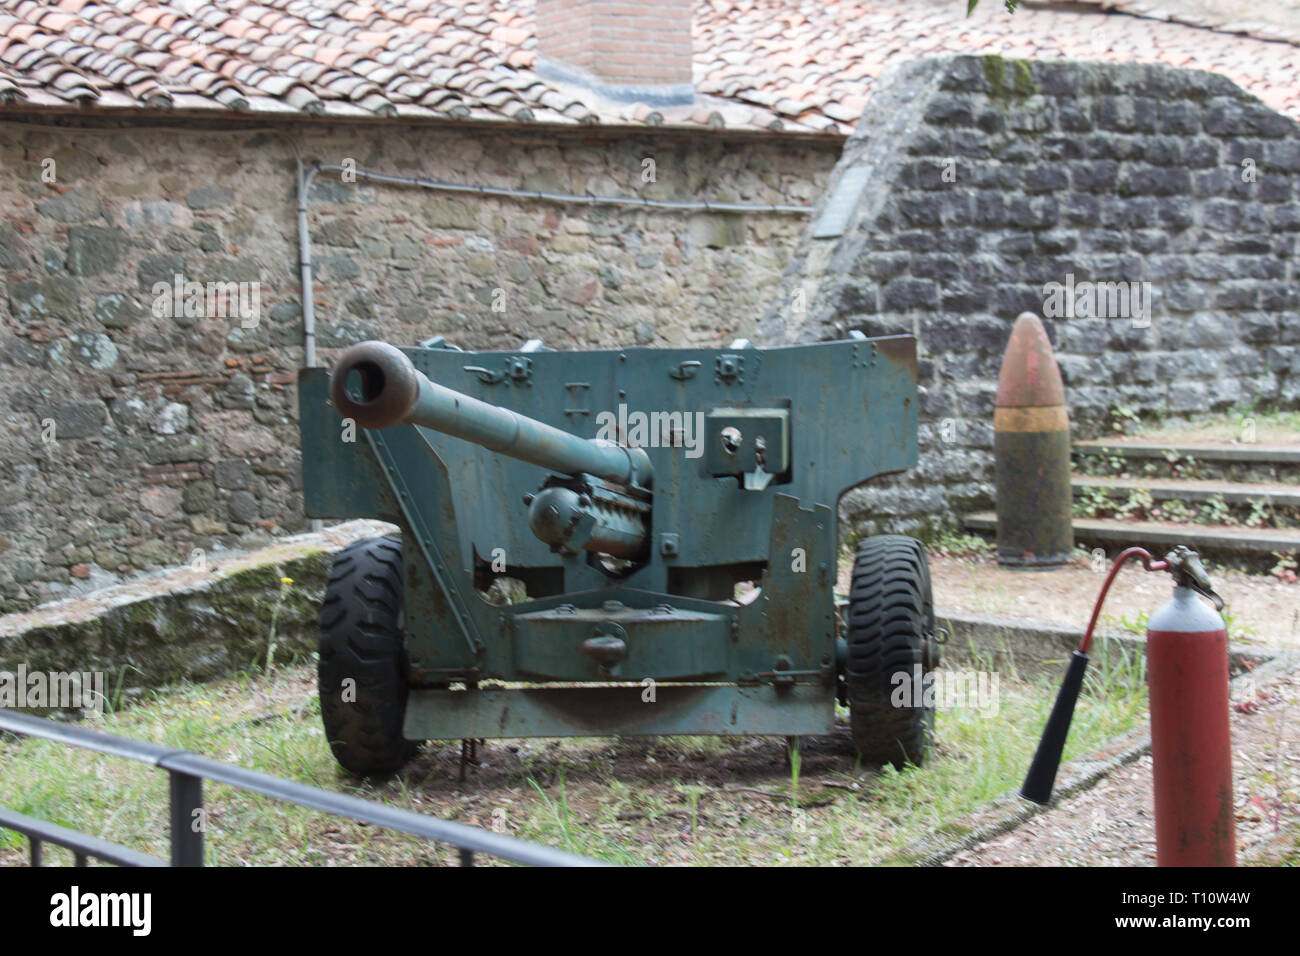 Italy, Montecatini Alto - April 25 2017: the view of weaponry inside ancient fortress of Montecatini Alto on April 25 2017 in Tuscany, Italy. - Stock Image